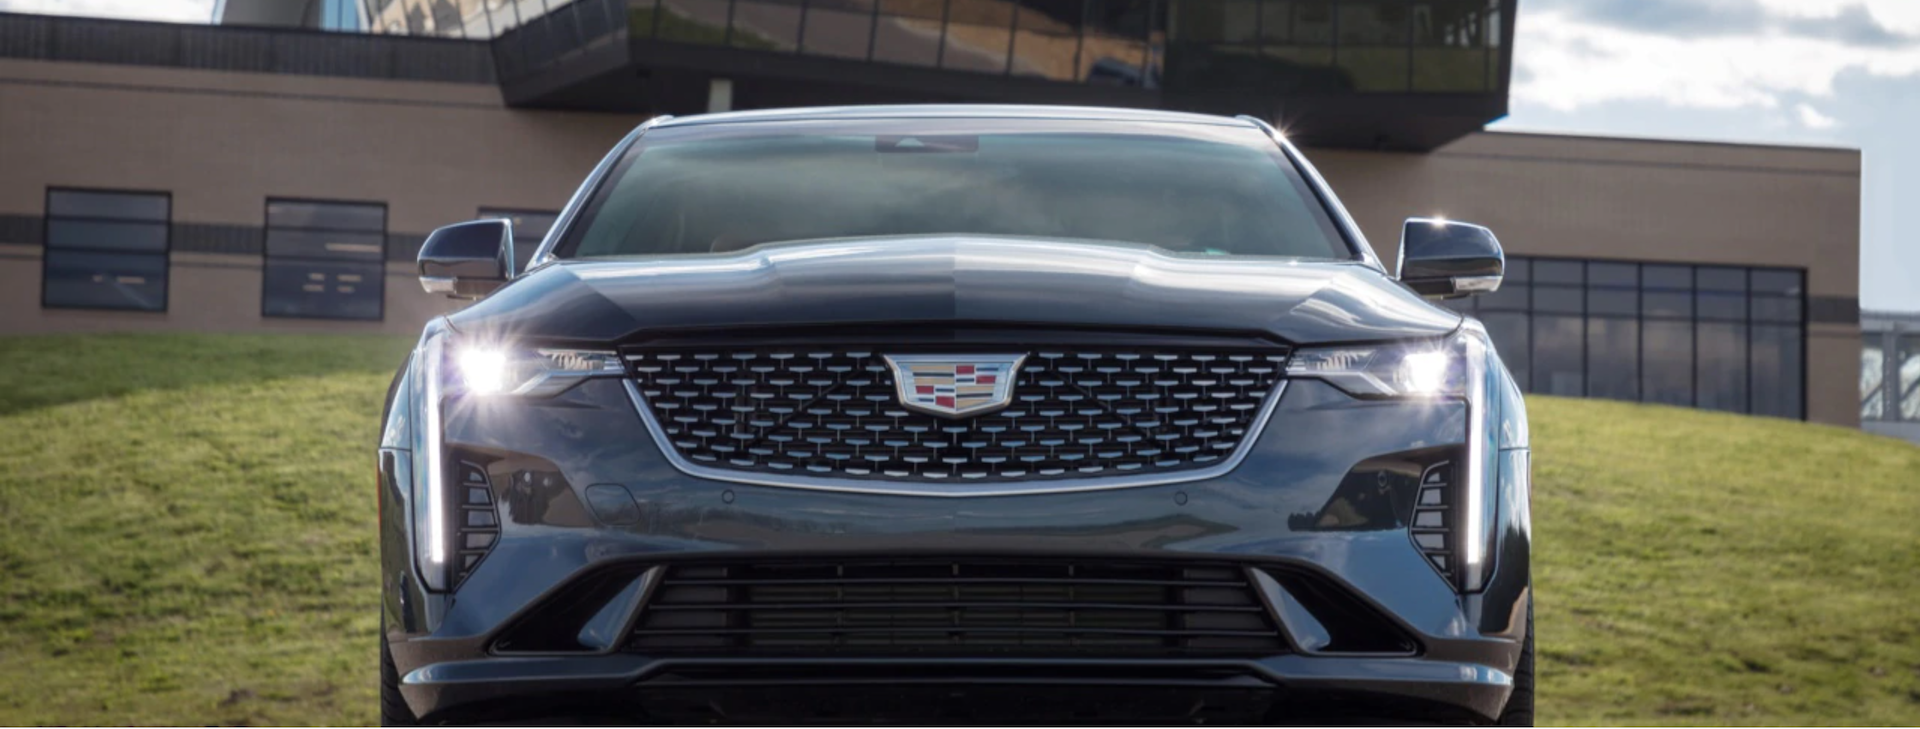 Picture and specs include the front grille of the 2020 Cadillac CT4.